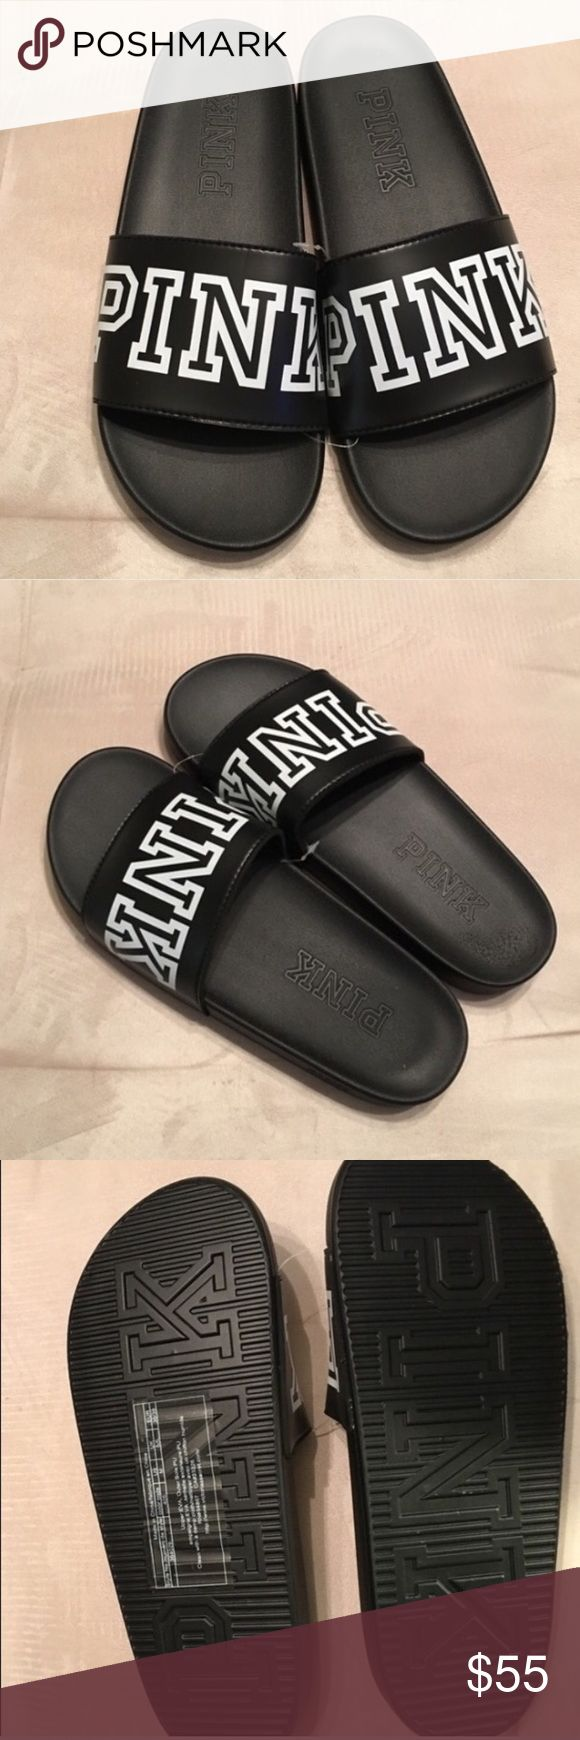 Victoria's Secret pink slides sandals slippers S Victoria's Secret Pink Nation Slides Sandals shoes slippers flip flop slide on. Size Small 5/6 Brand new! Sold out online and in stores! These slides were in high demand and I was only able to get one of these in the Black/white color! Perfect slides for the beach, pool, gym, etc. Don't miss out on these, not everyone can get a pair and you won't regret getting yours! PRICE FIRM THANKS FOR LOOKING, CHECK OUT MY OTHER LISTINGS!(: PINK...